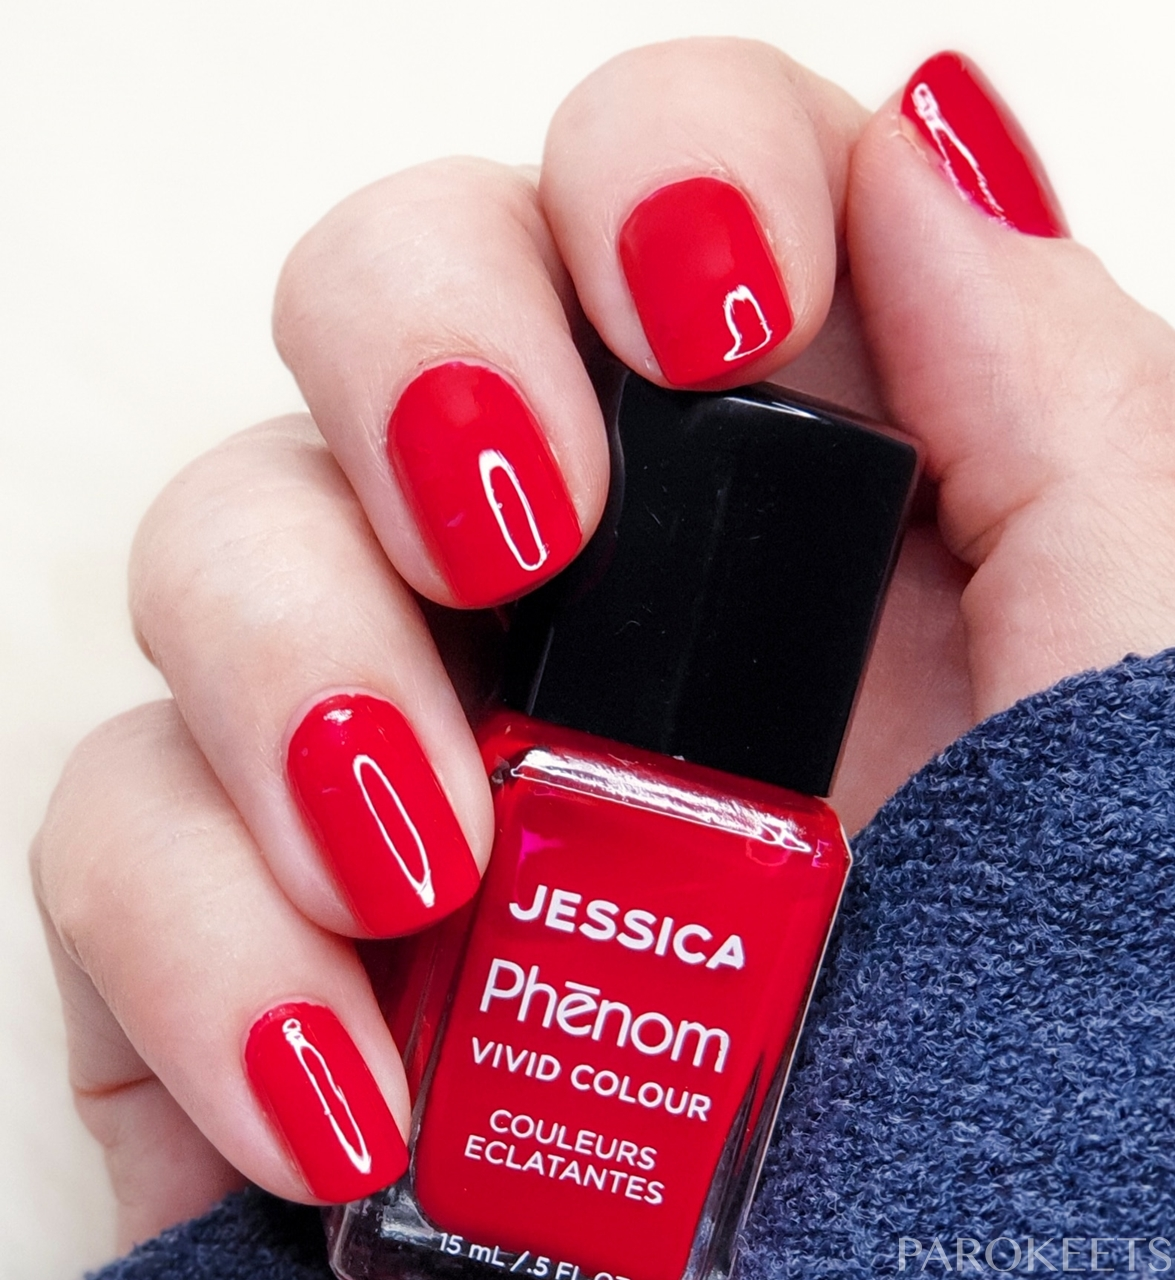 Jessica Phenom - Jessica Red nail polish + Poshe fast drying top coat